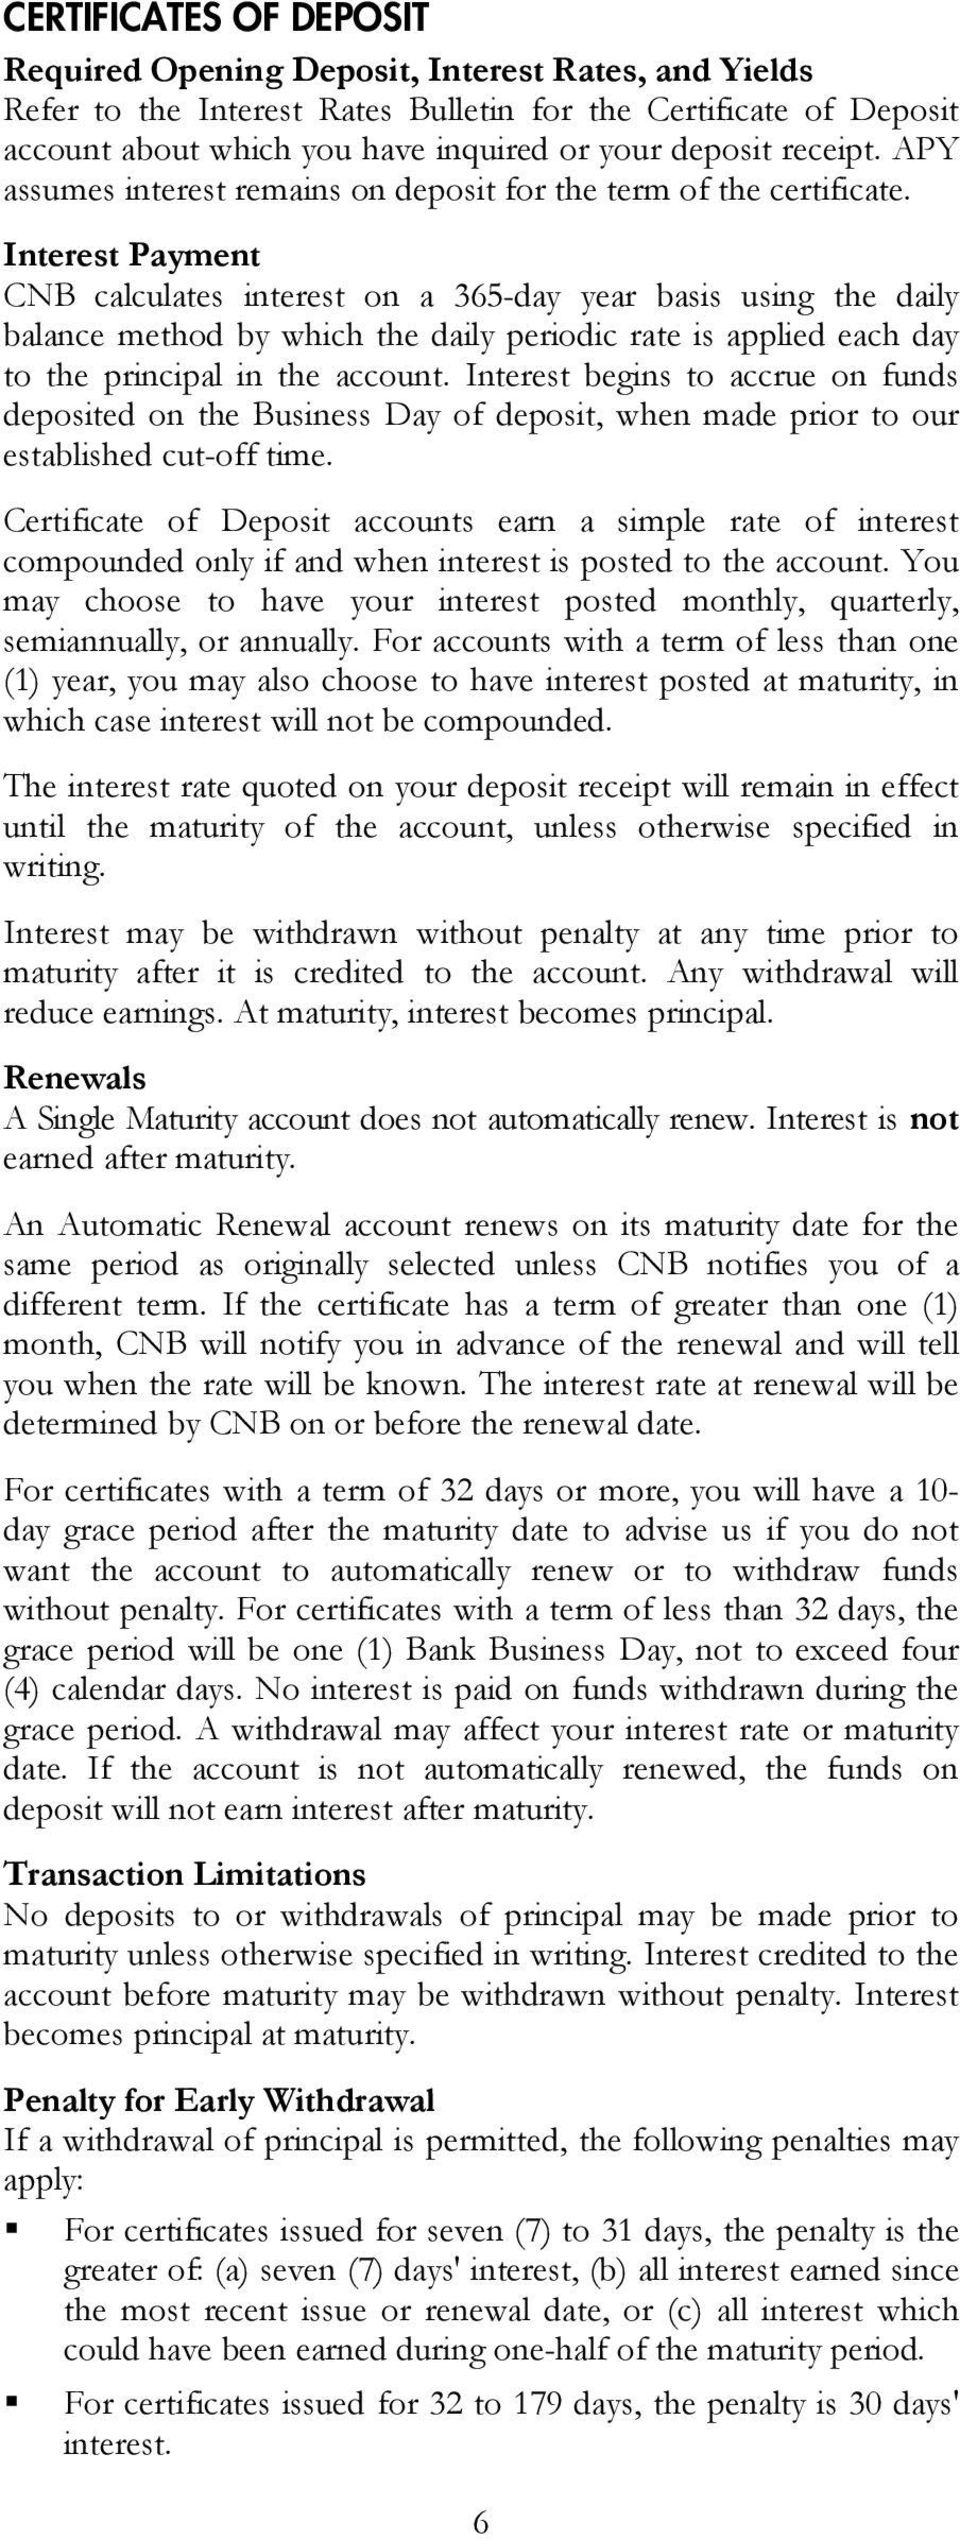 Interest Payment CNB calculates interest on a 365-day year basis using the daily balance method by which the daily periodic rate is applied each day to the principal in the account.